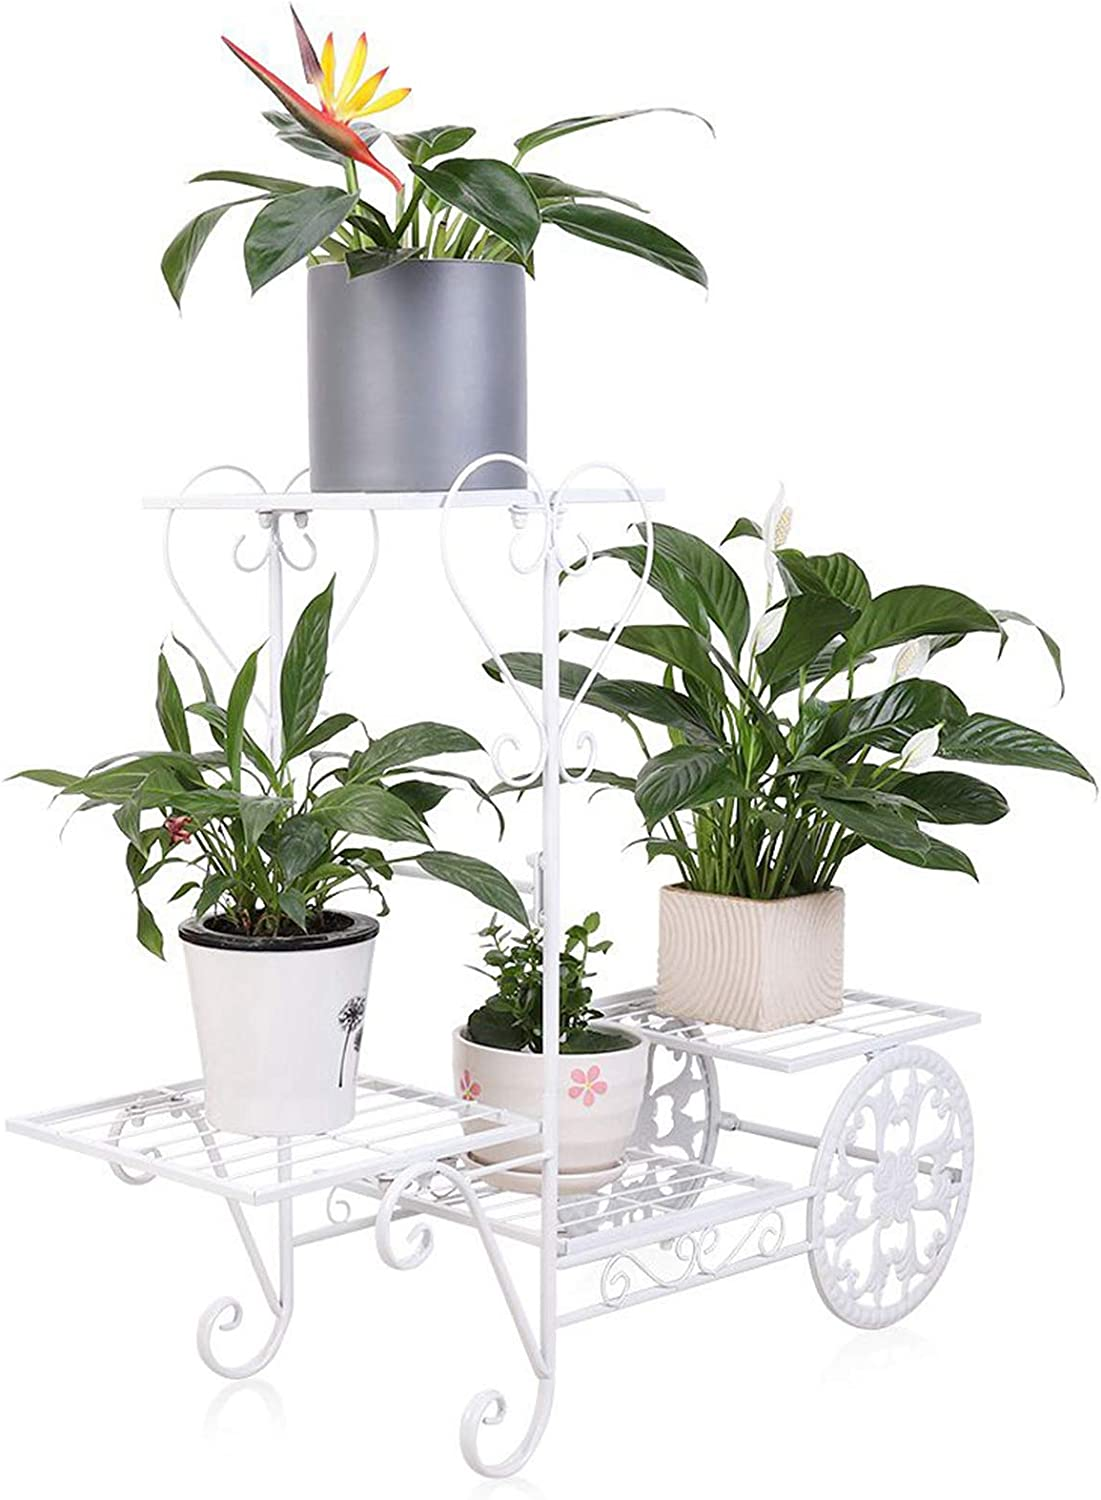 unho Garden Cart Stand with 4 Tier Plants Shelvings Parisian Style Metal Flower Rack Display Holder for Small Potted Plants, White